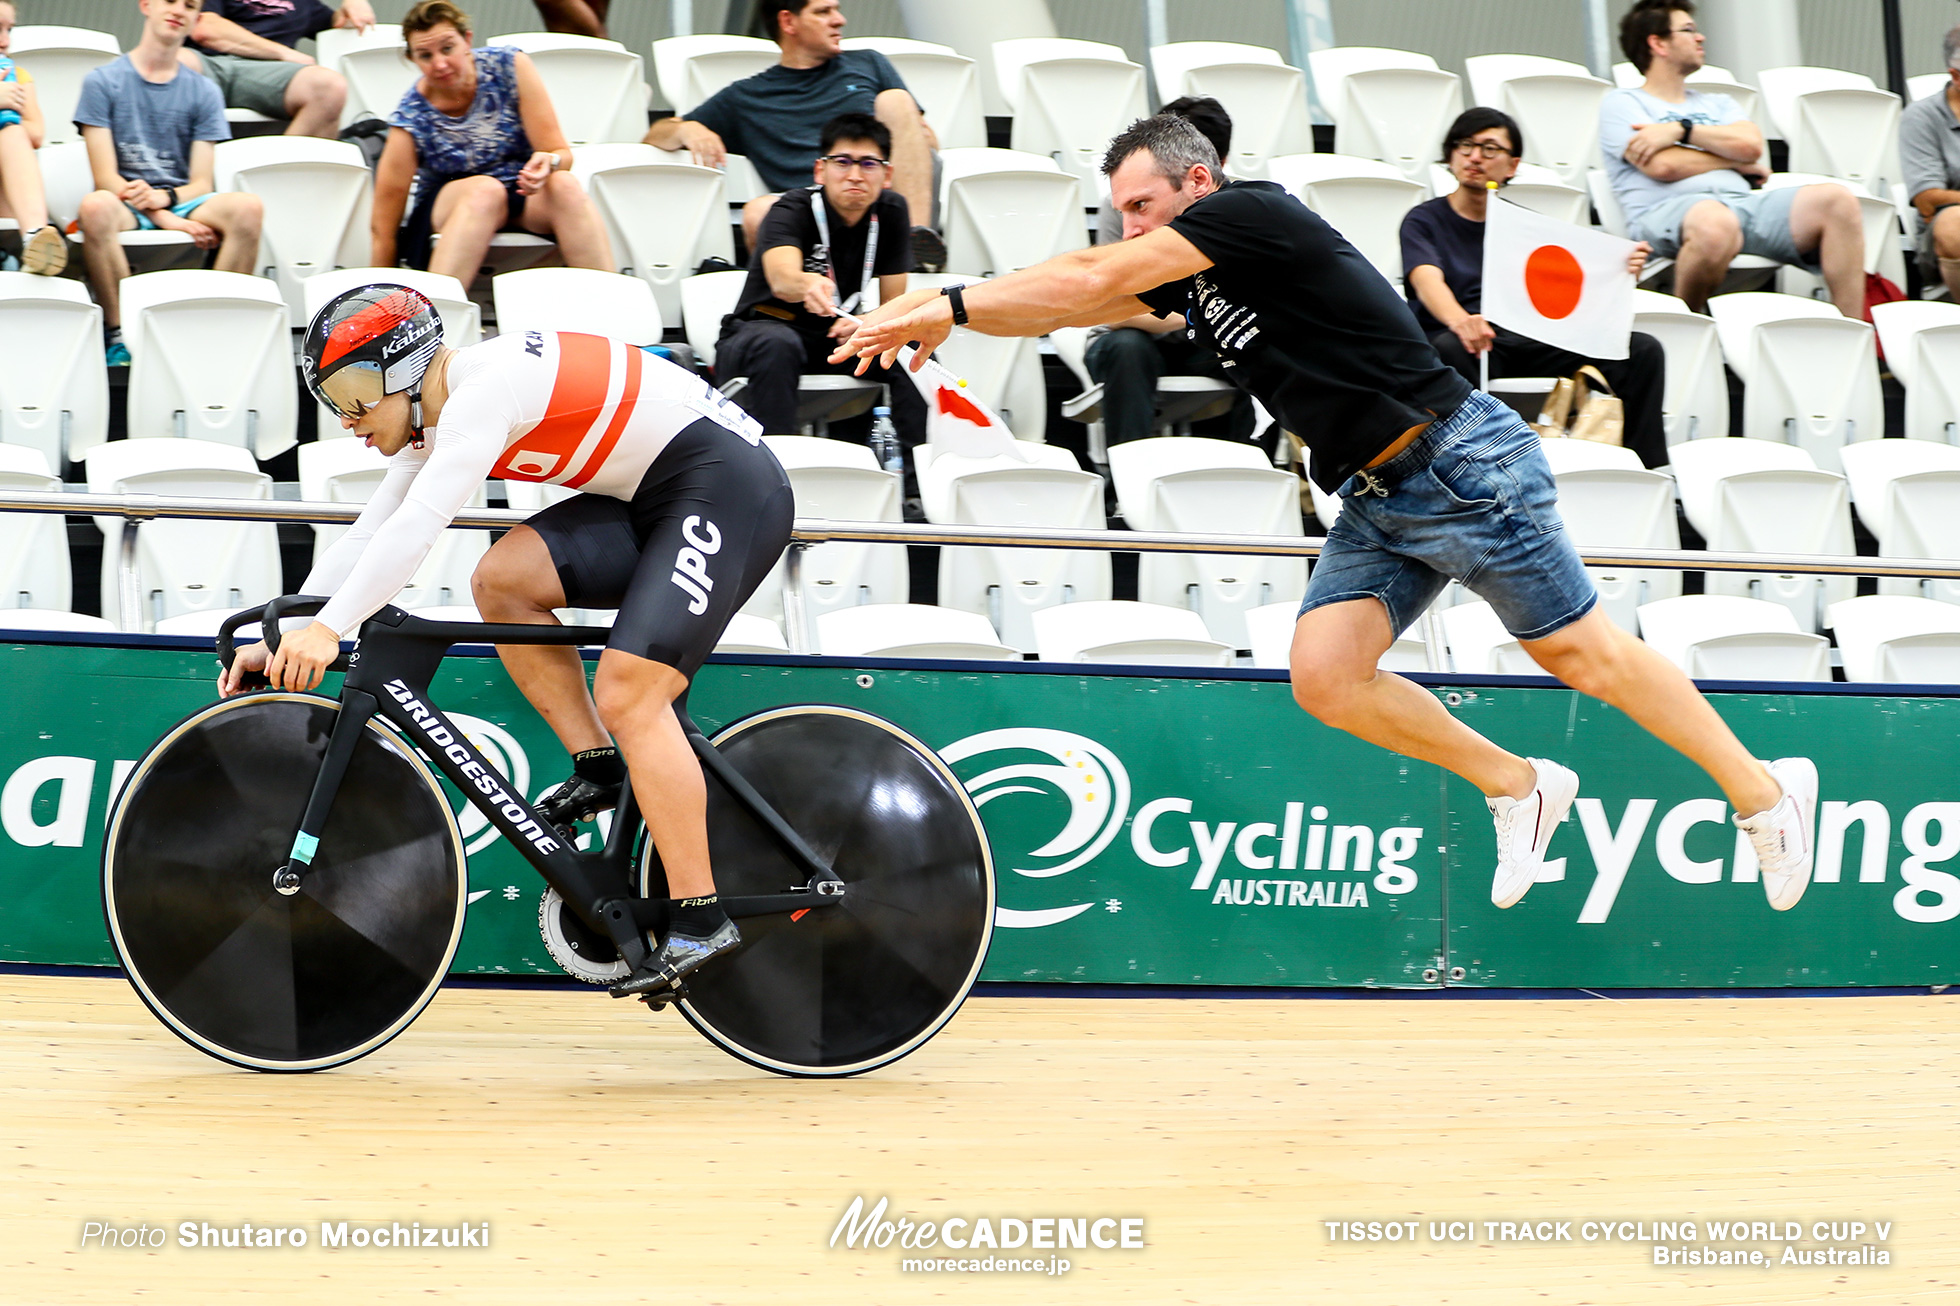 Qualifying / Men's Sprint / TISSOT UCI TRACK CYCLING WORLD CUP V, Brisbane, Australia